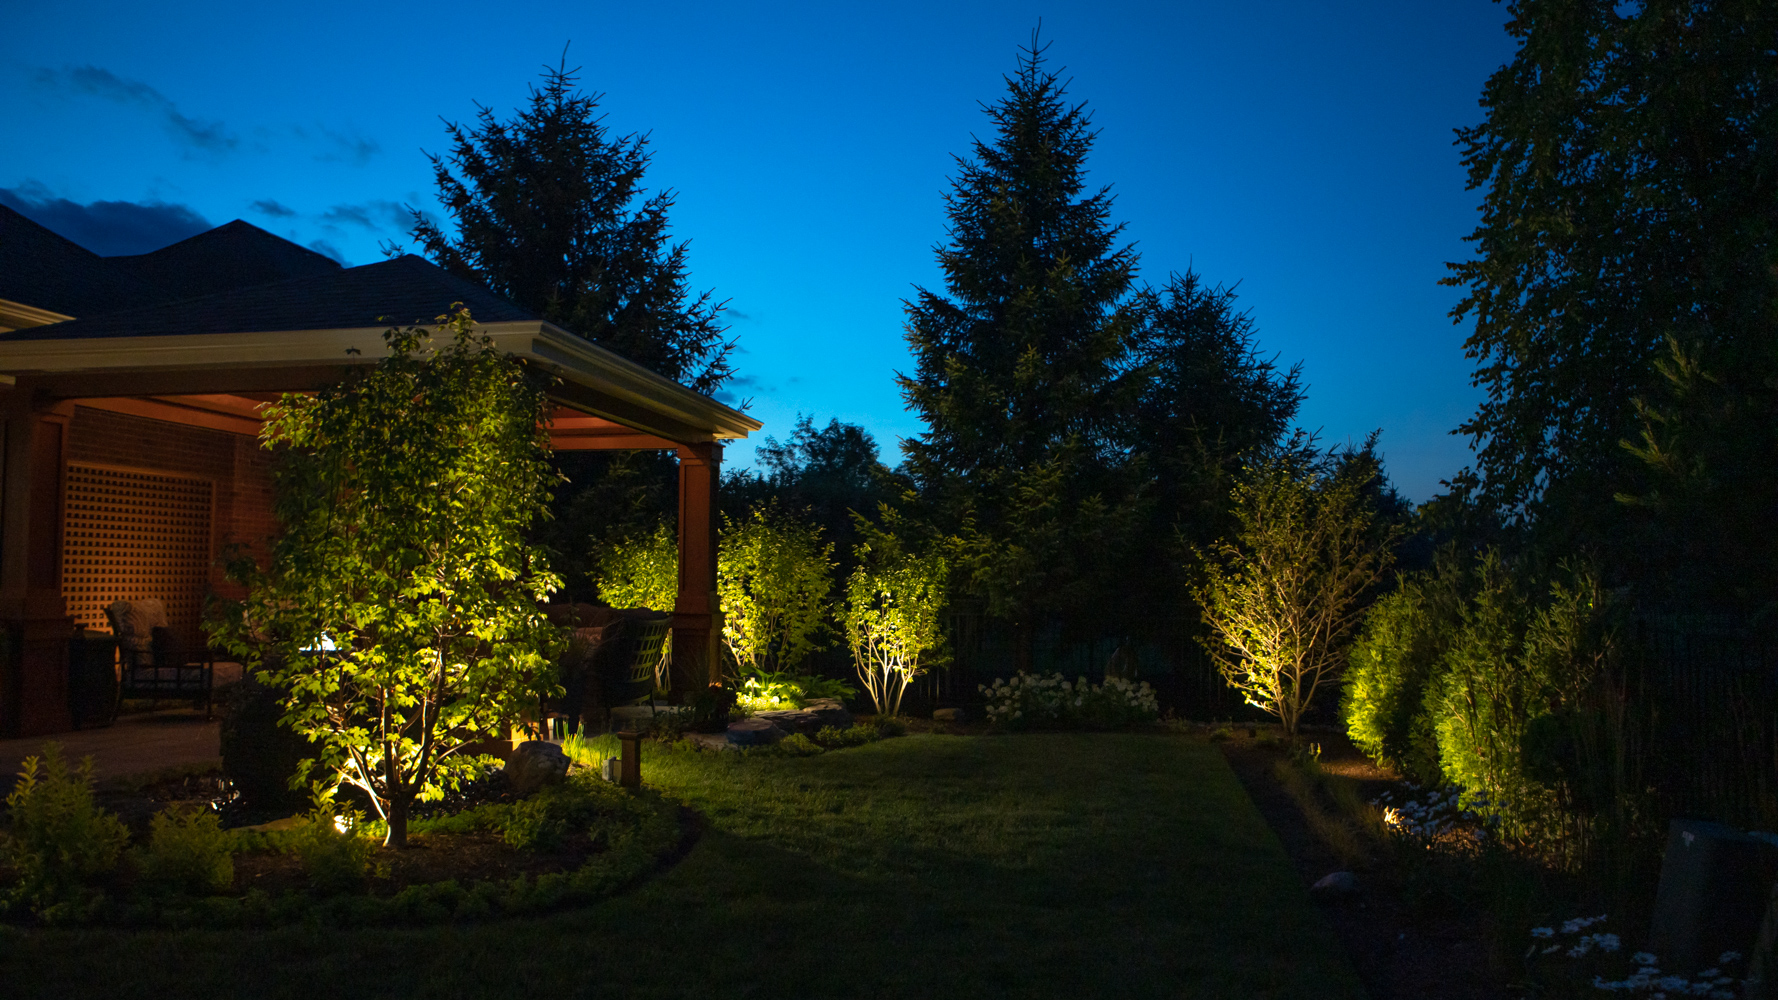 Using lights to accentuate your garden features.